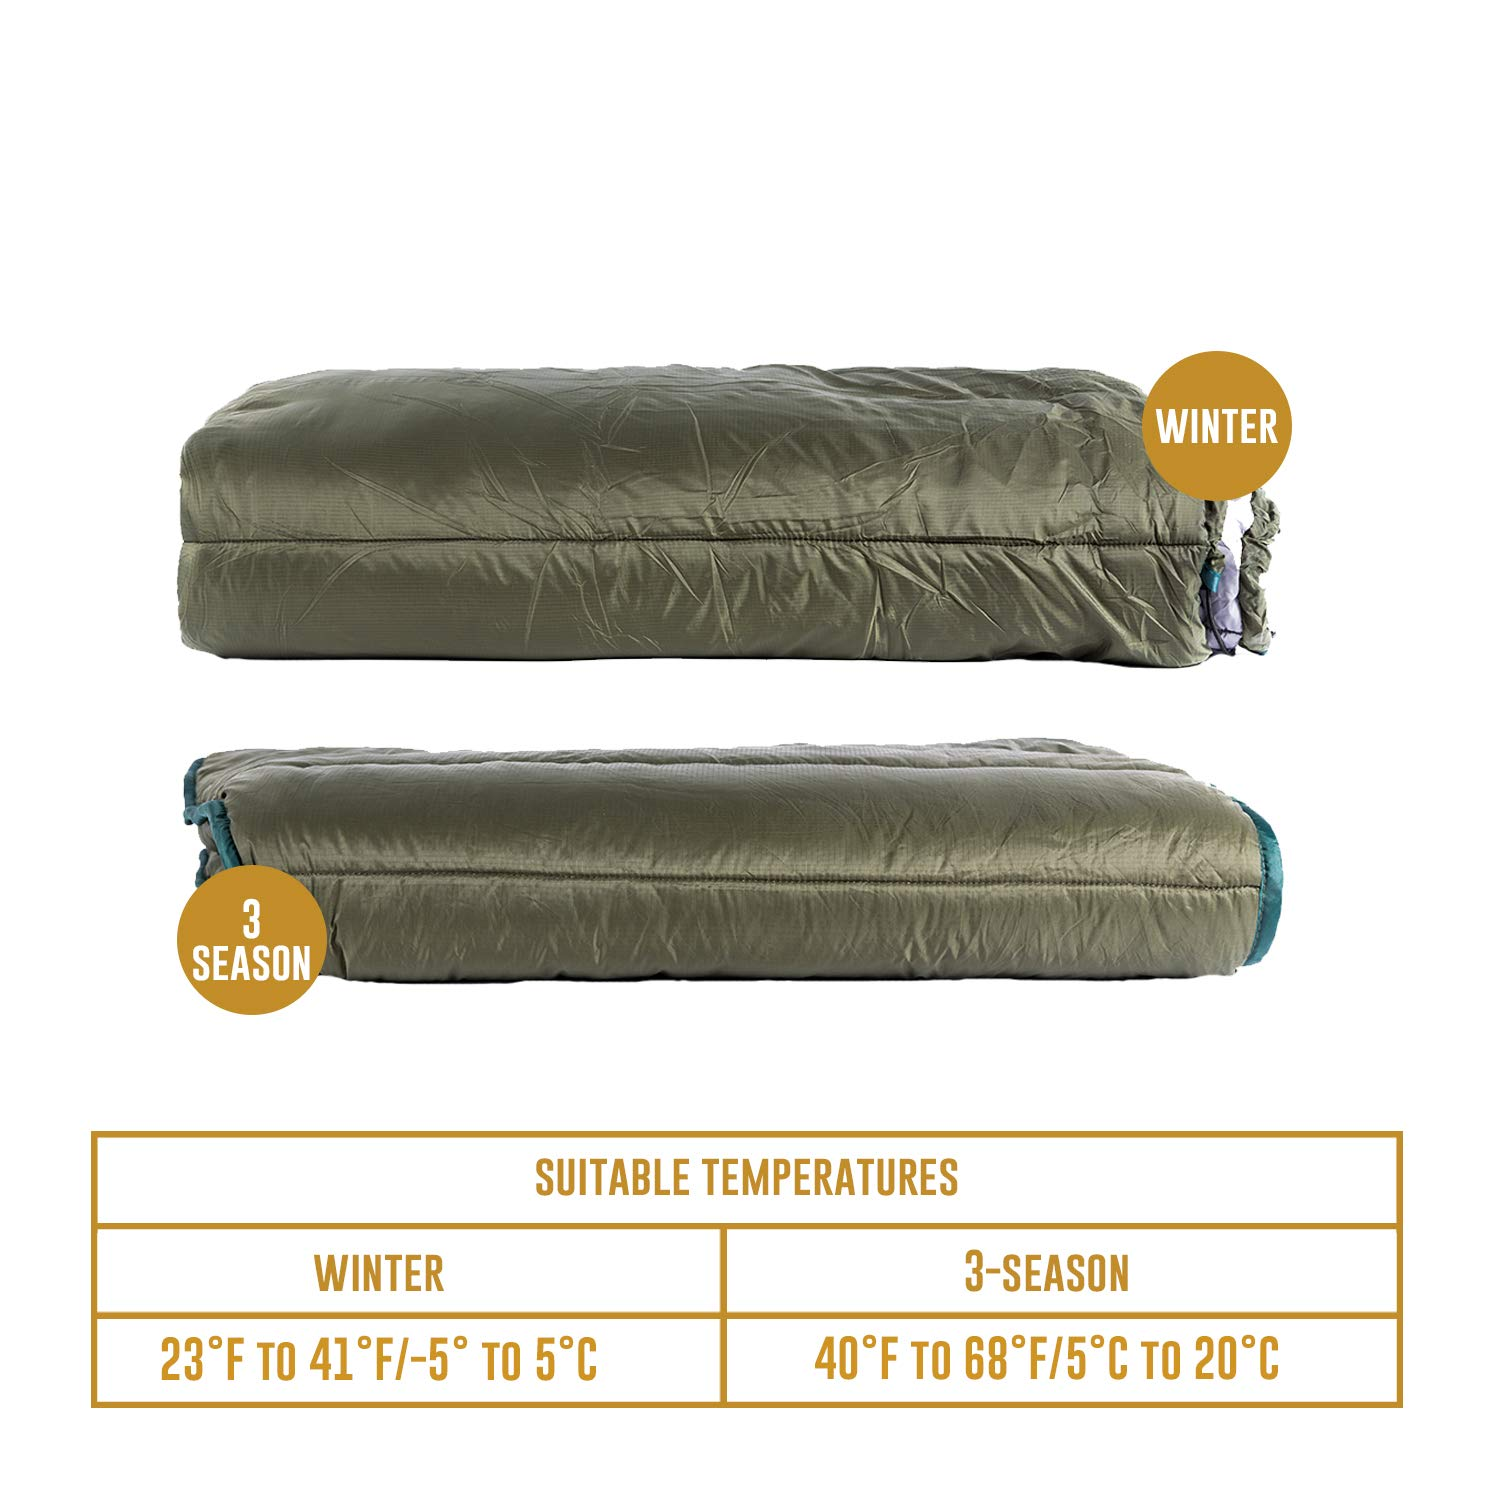 High Standard In Quality And Hygiene 5 C To 20 C Search For Flights Onetigris Double Hammock Under-quilt Lightweight Full Length Hammock Underquilt Under Blanket 40 F To 68 F